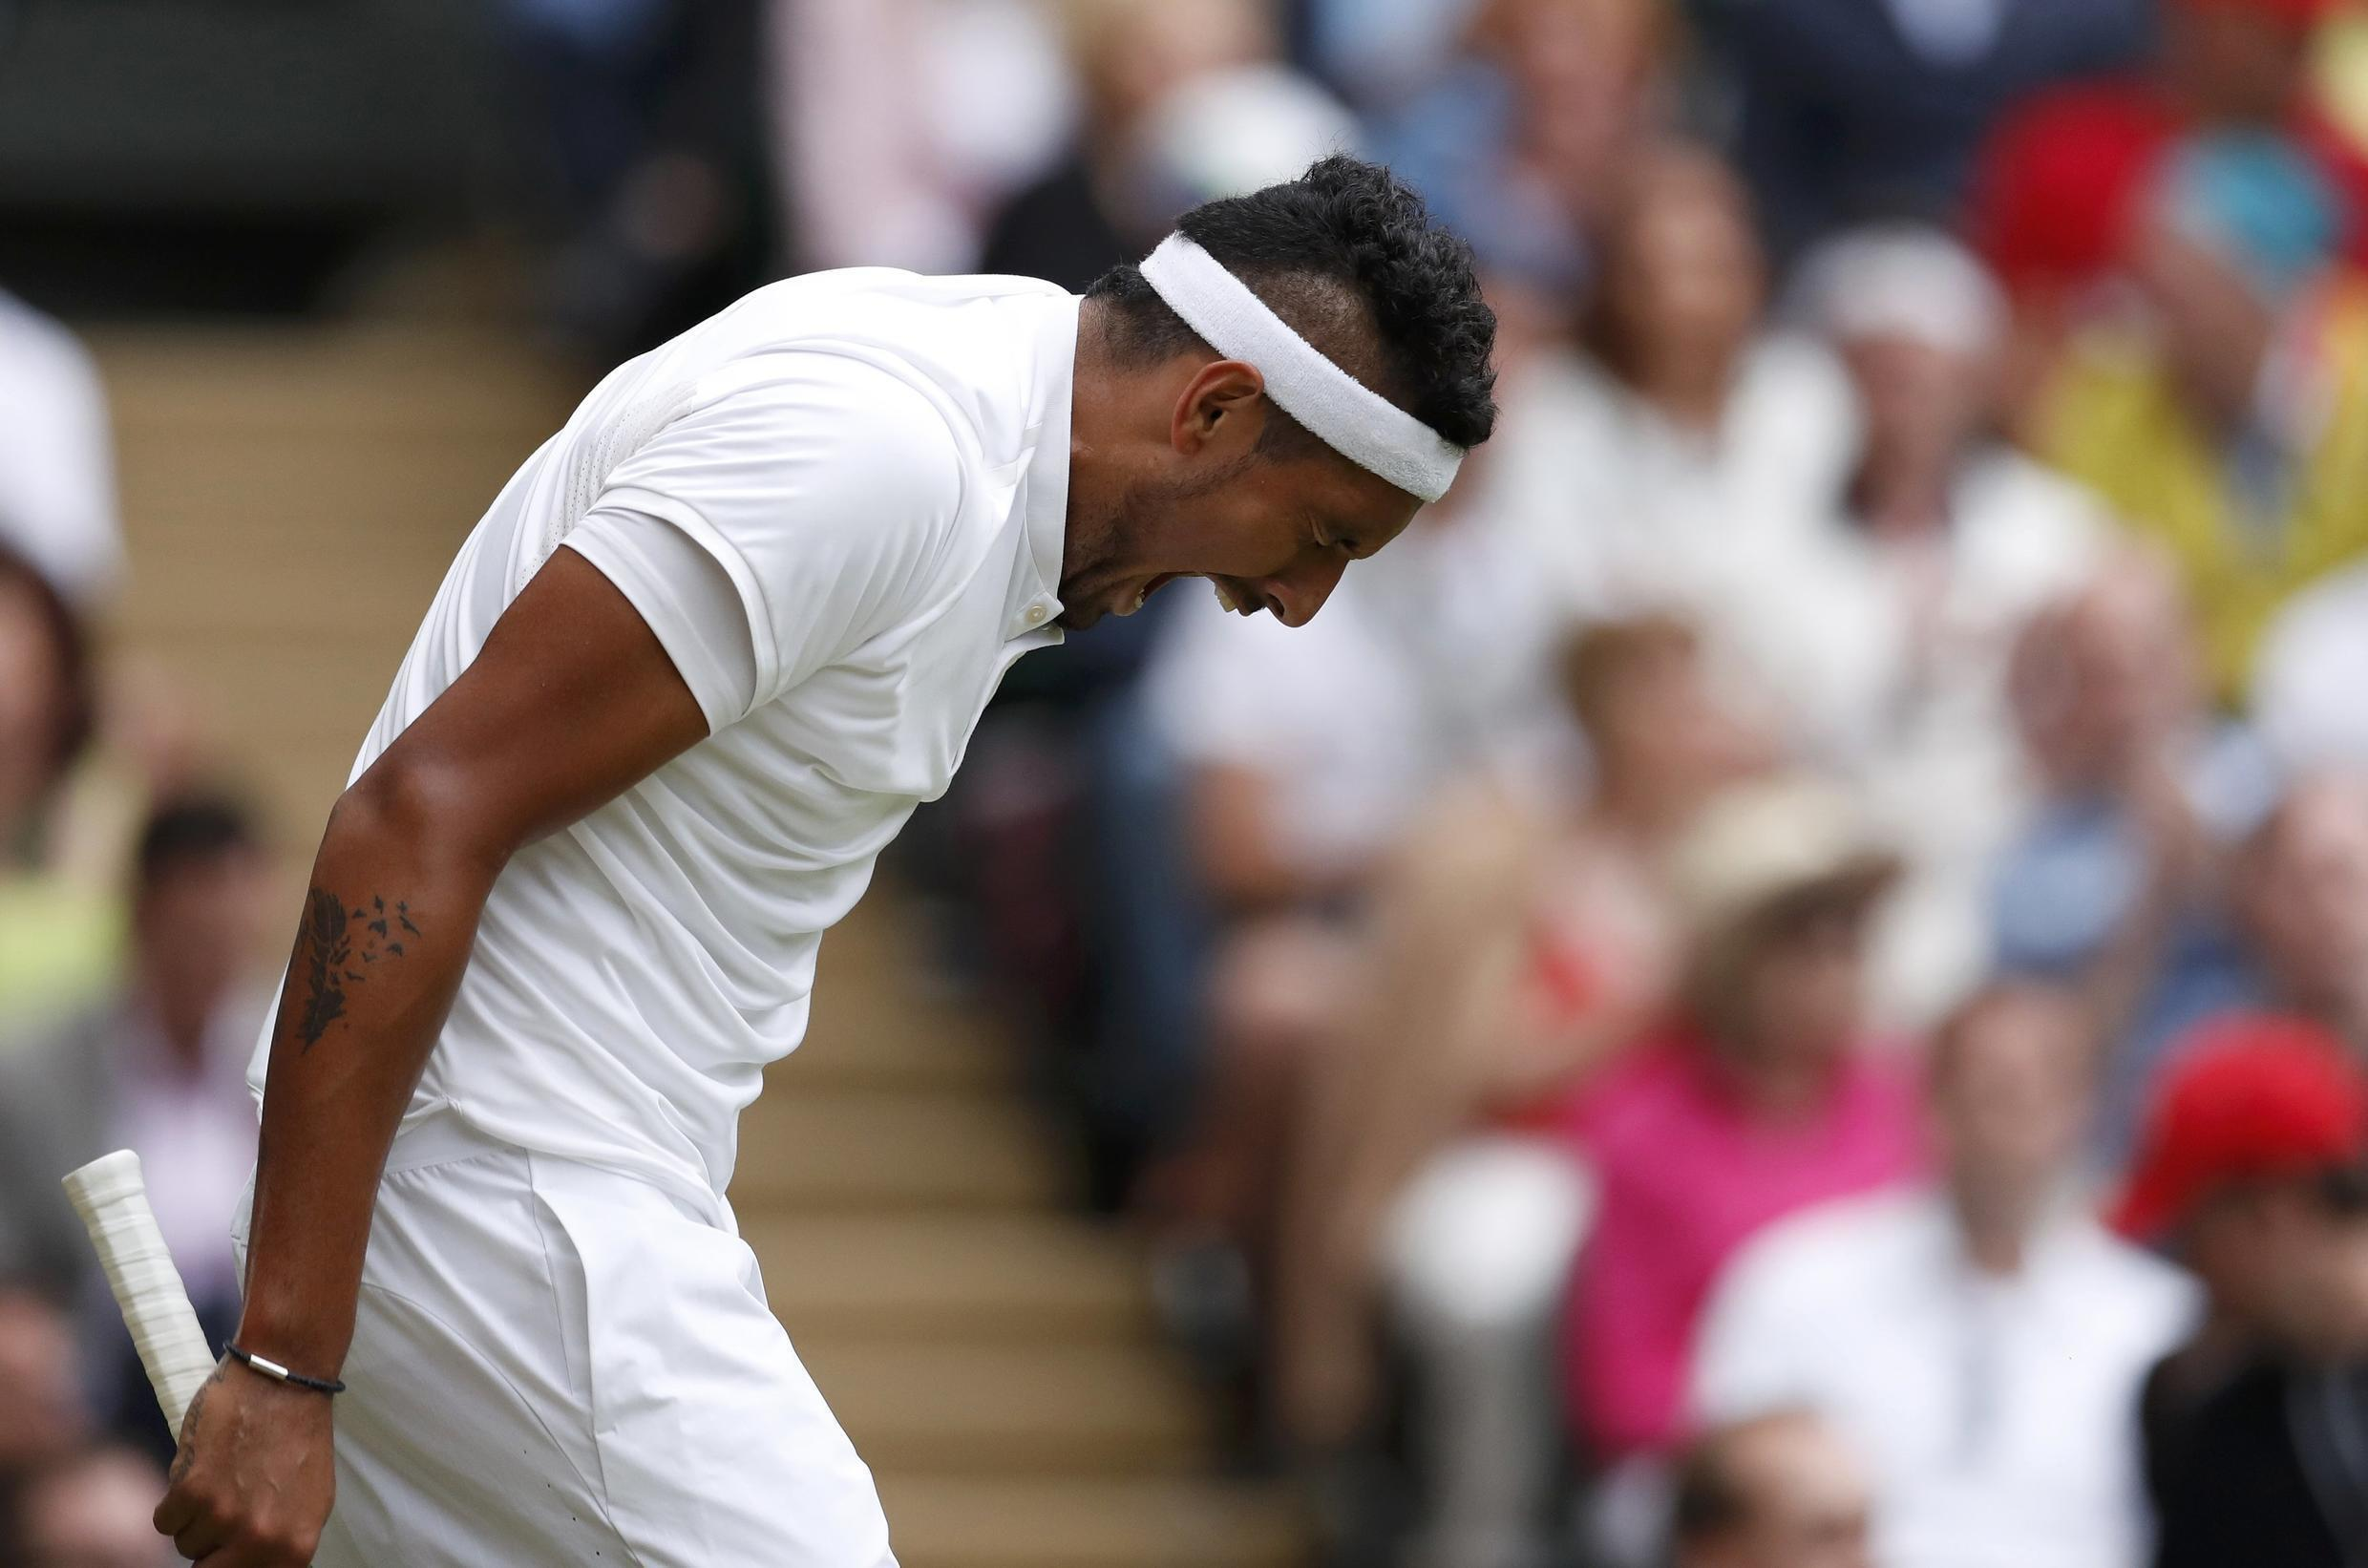 Nick Kyrgios berated his performance in the last 16 at Wimbledon against Andy Murray.